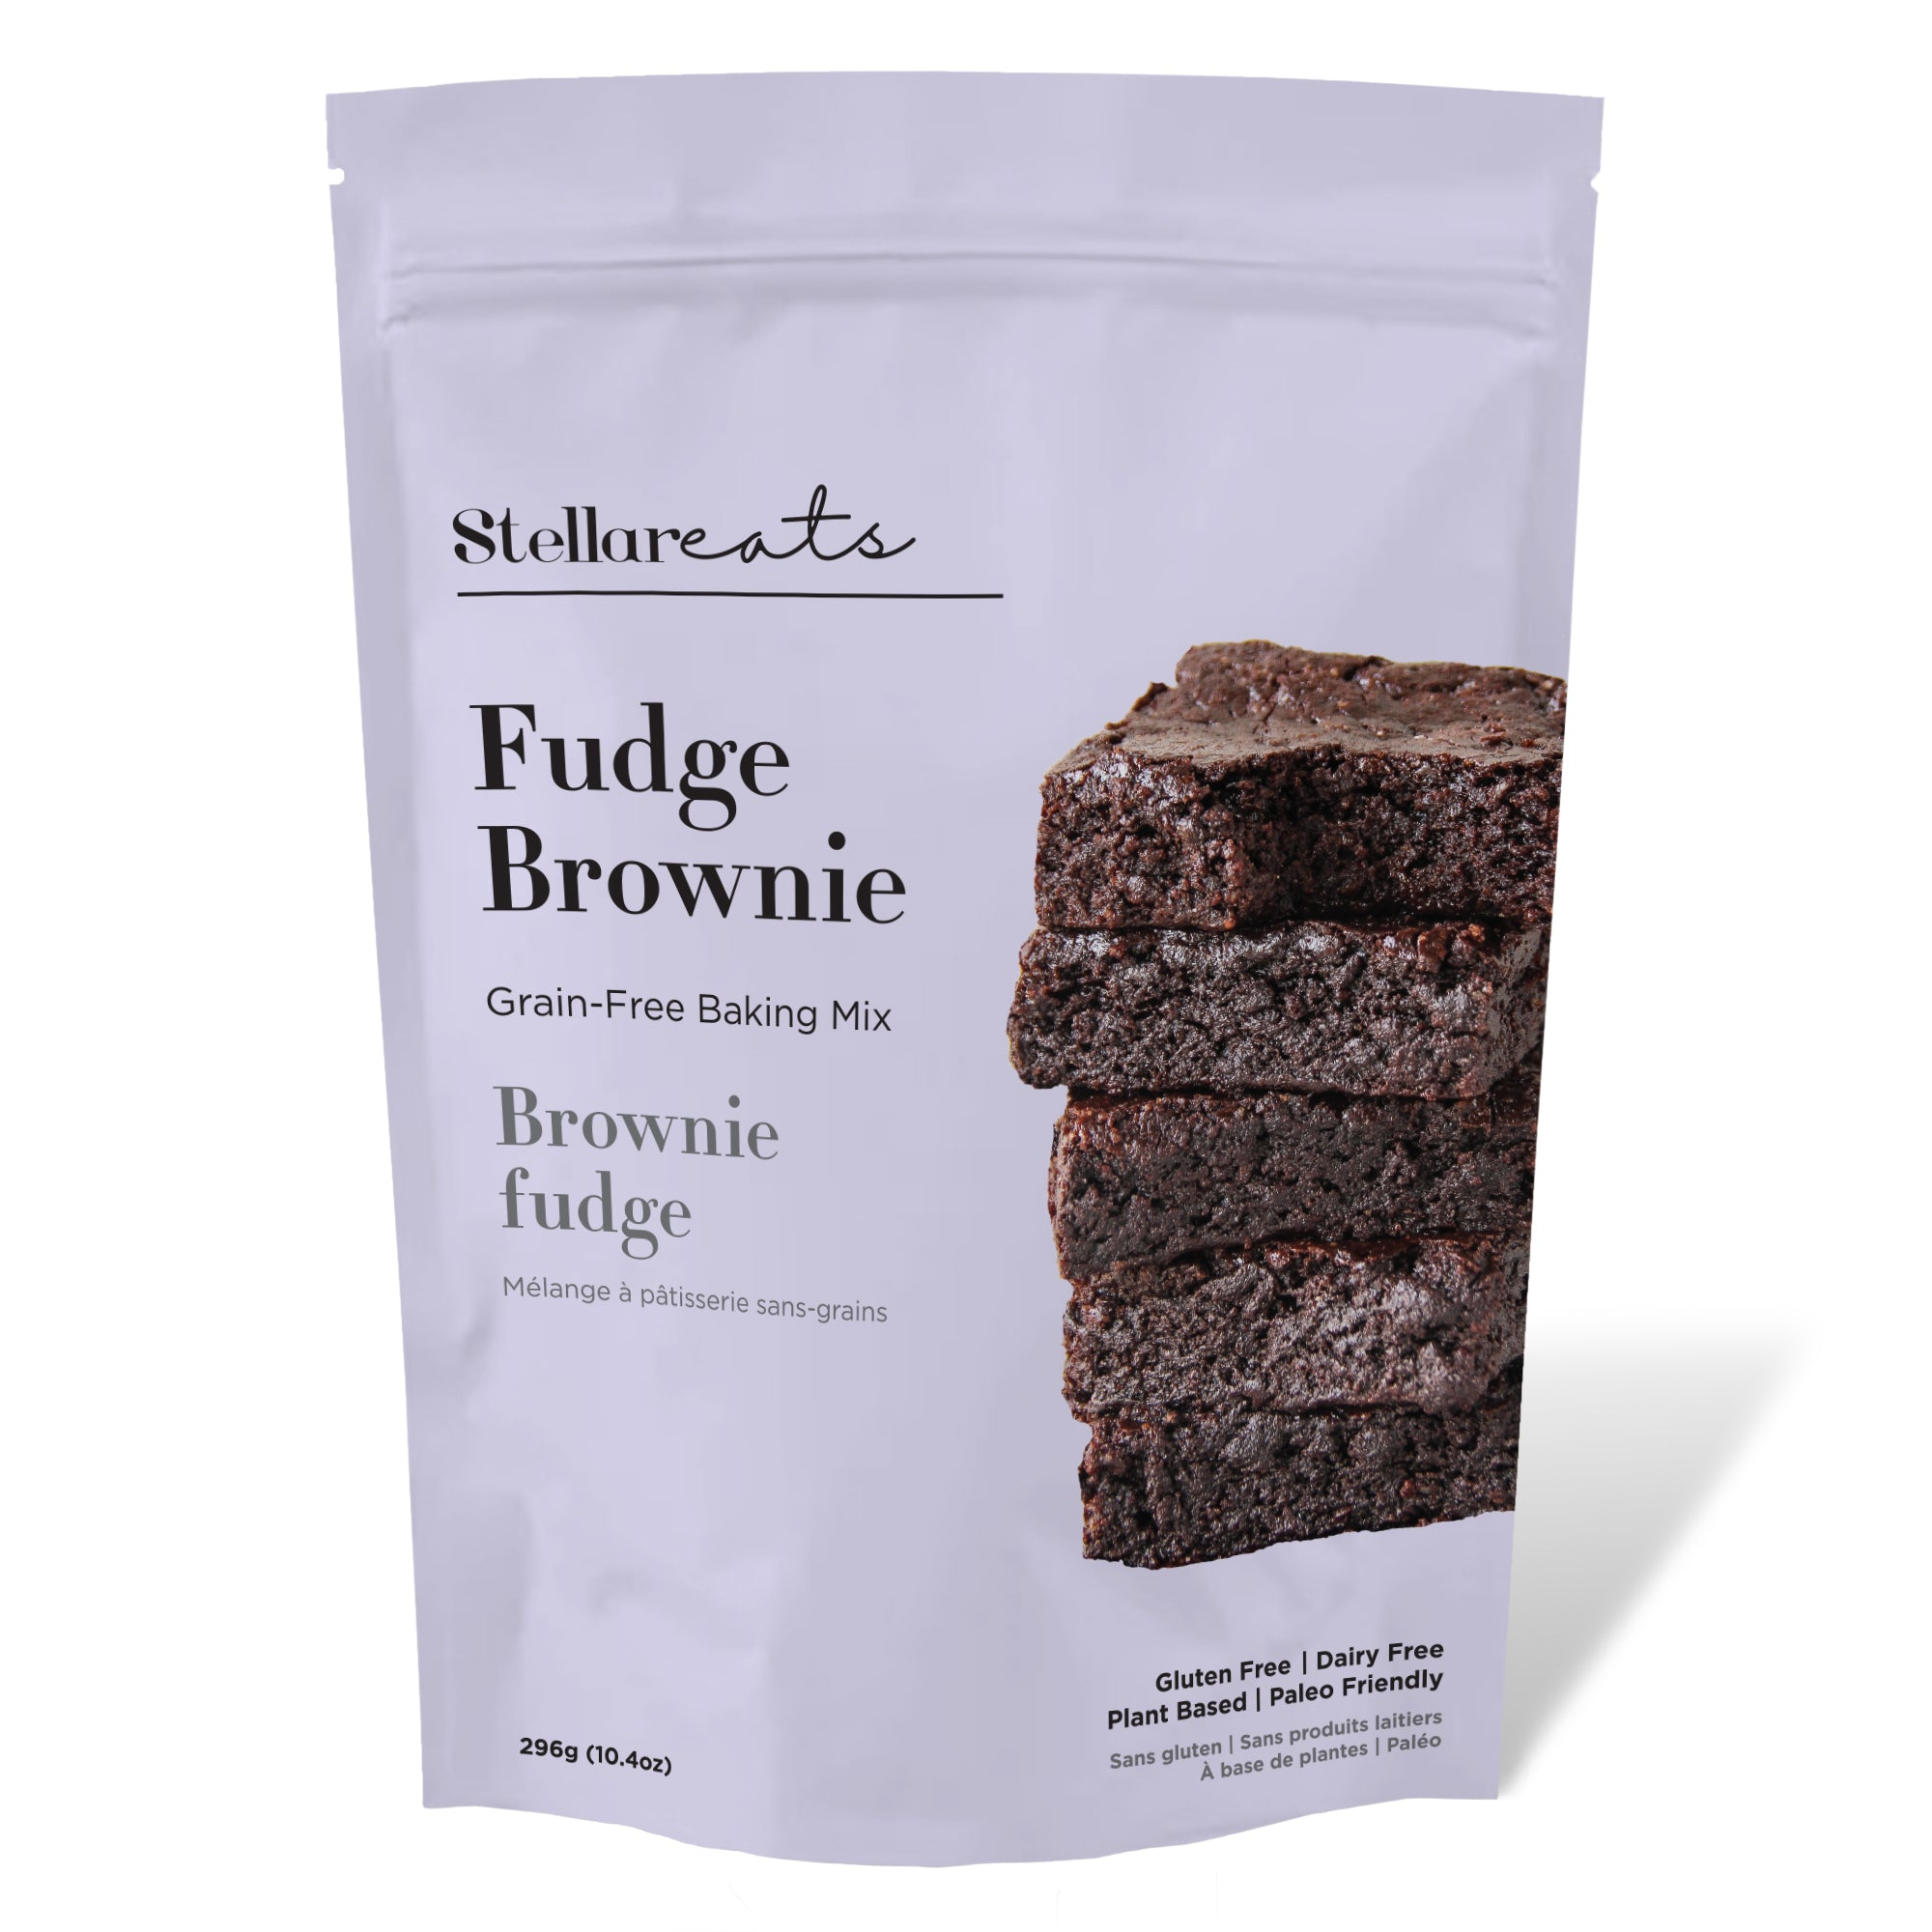 Fudge Brownie Mix